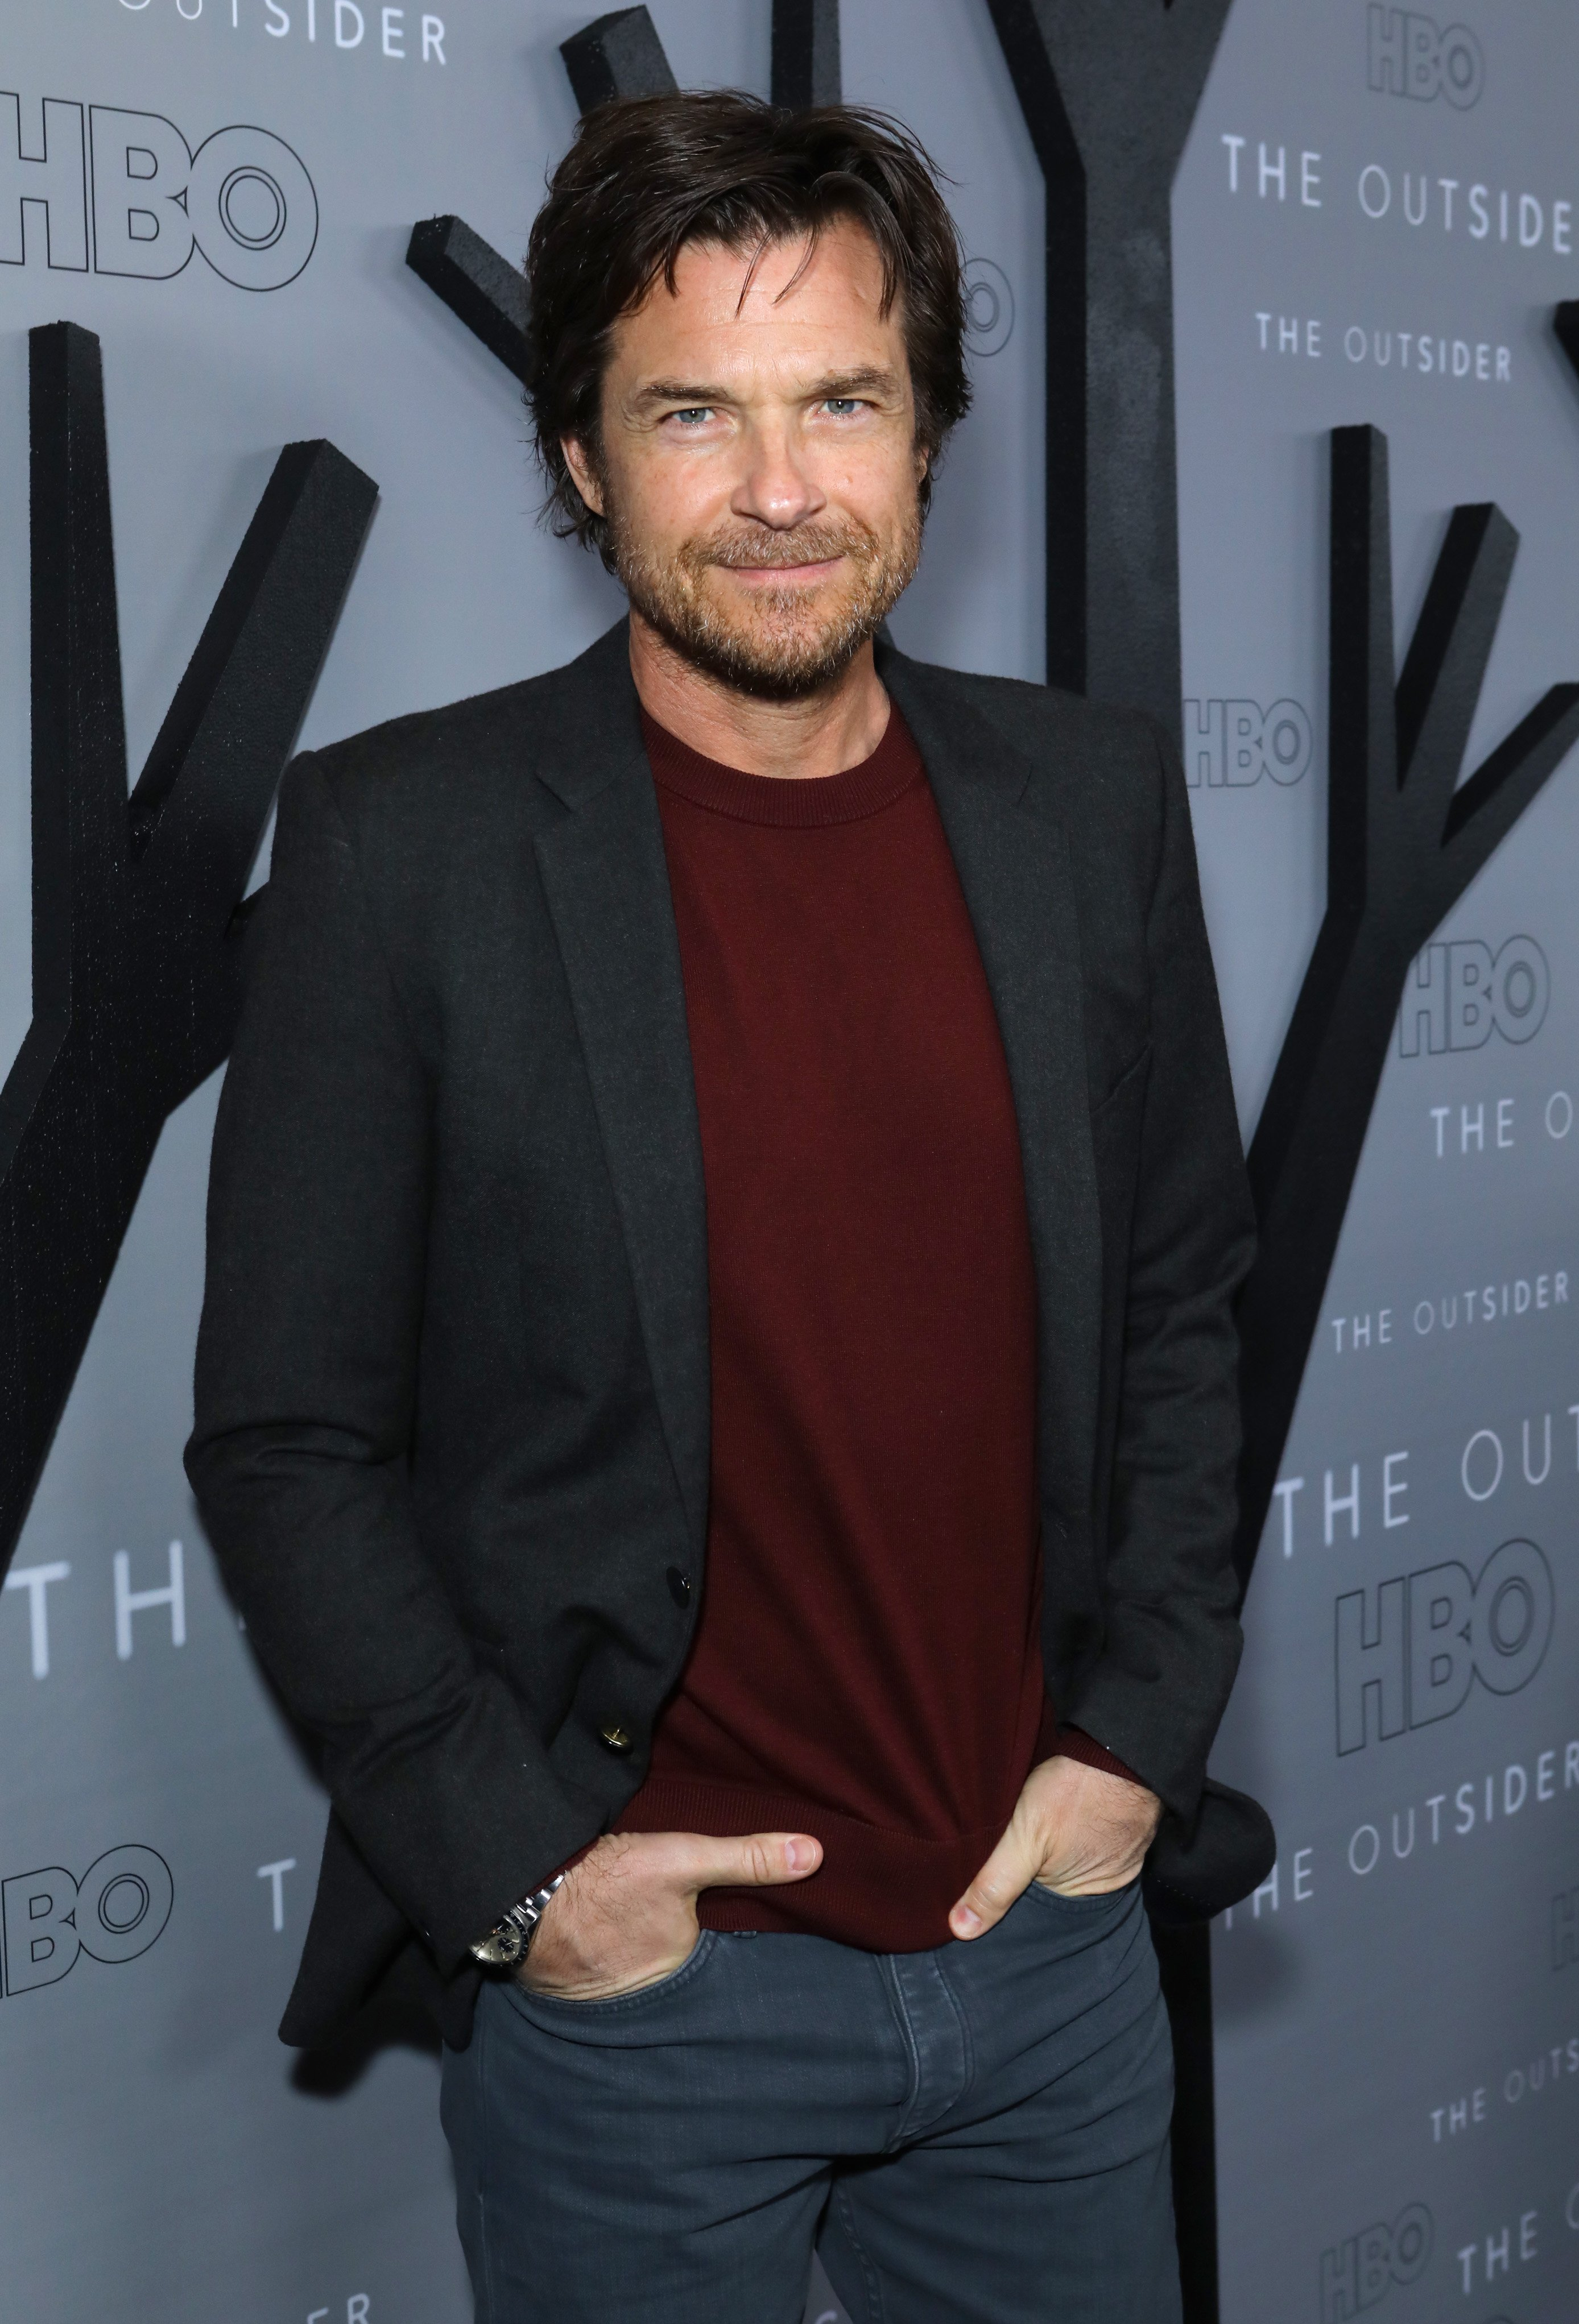 Jason Bateman on January 09, 2020 in Los Angeles, California   Source: Getty Images